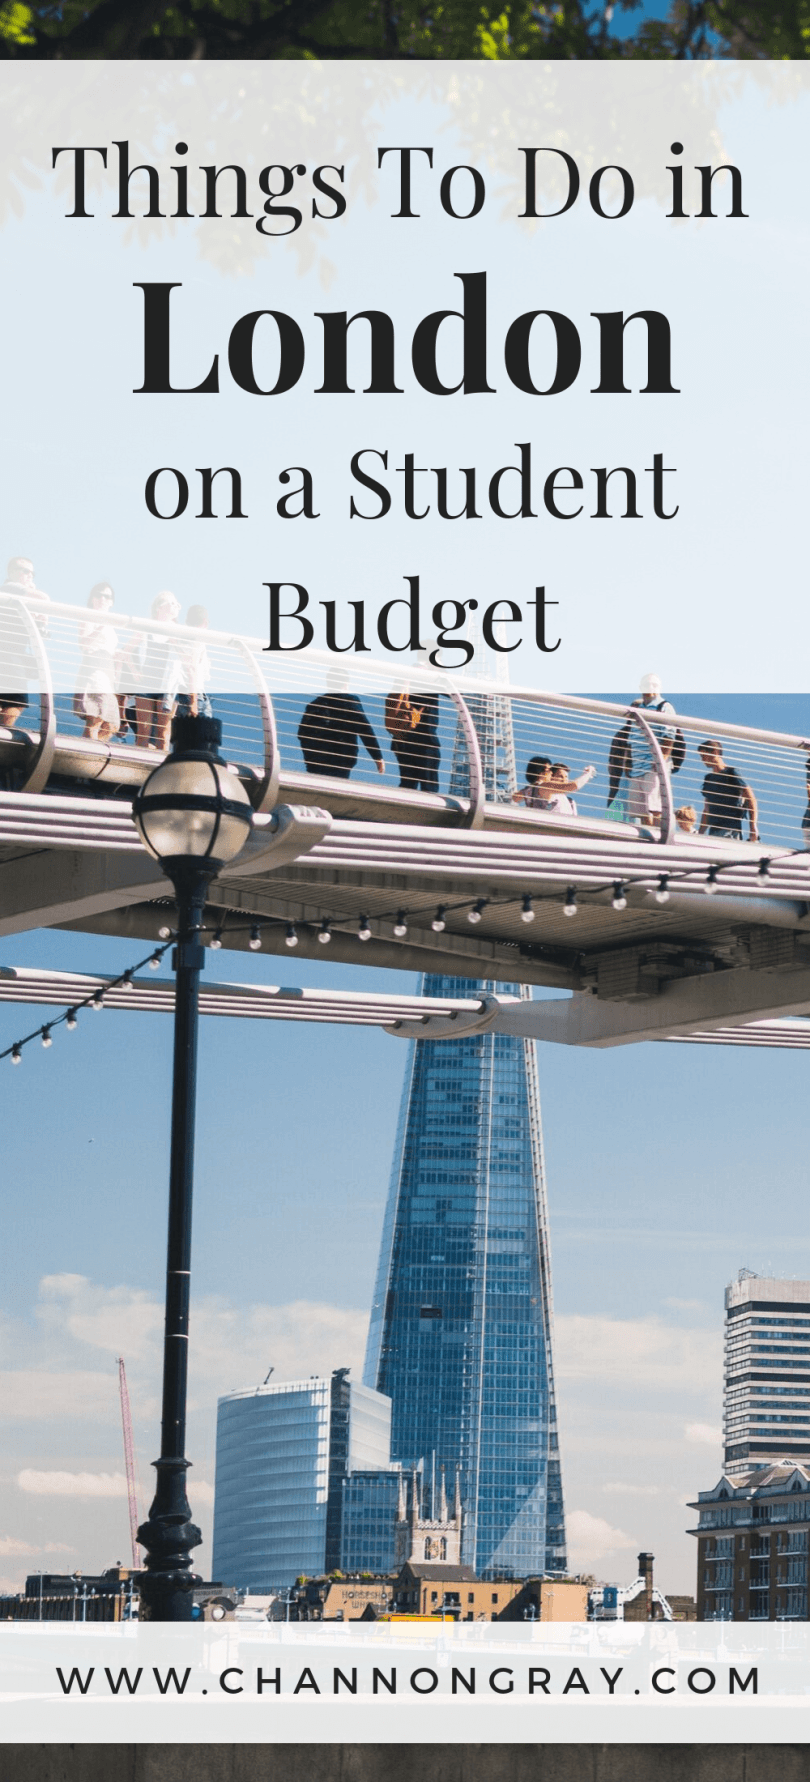 There are few cities as exciting and glamorous in the world as London so it is easy to see why so many students come to study at the many great universities found here. Being a student in the capital is an amazing experience, but you may also find that it is not particularly student budget-friendly as it can be an expensive place to live. With this in mind, here are a few things that you can do in London on a student budget. - www.channongray.com // heythereChannon #uni #university #studentliving